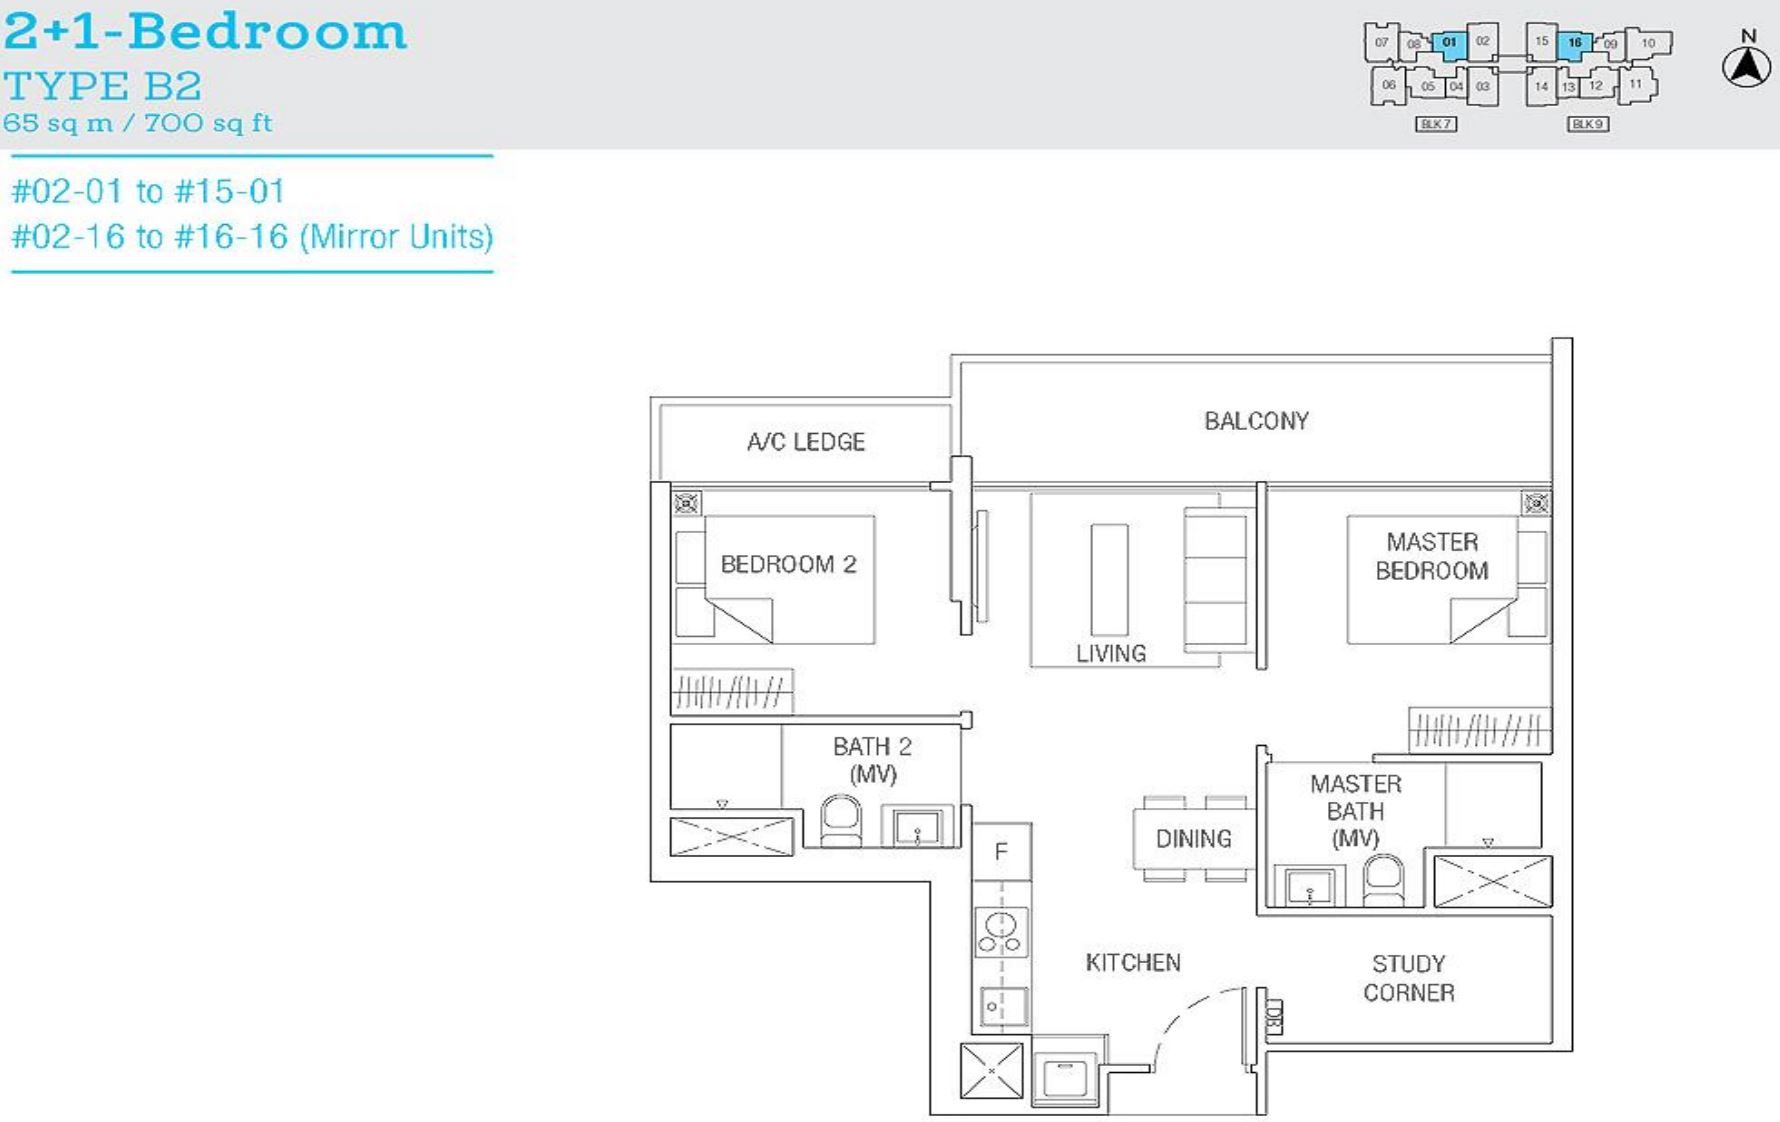 Tre Residences FloorPlan - 2+1 Bedroom Type B2